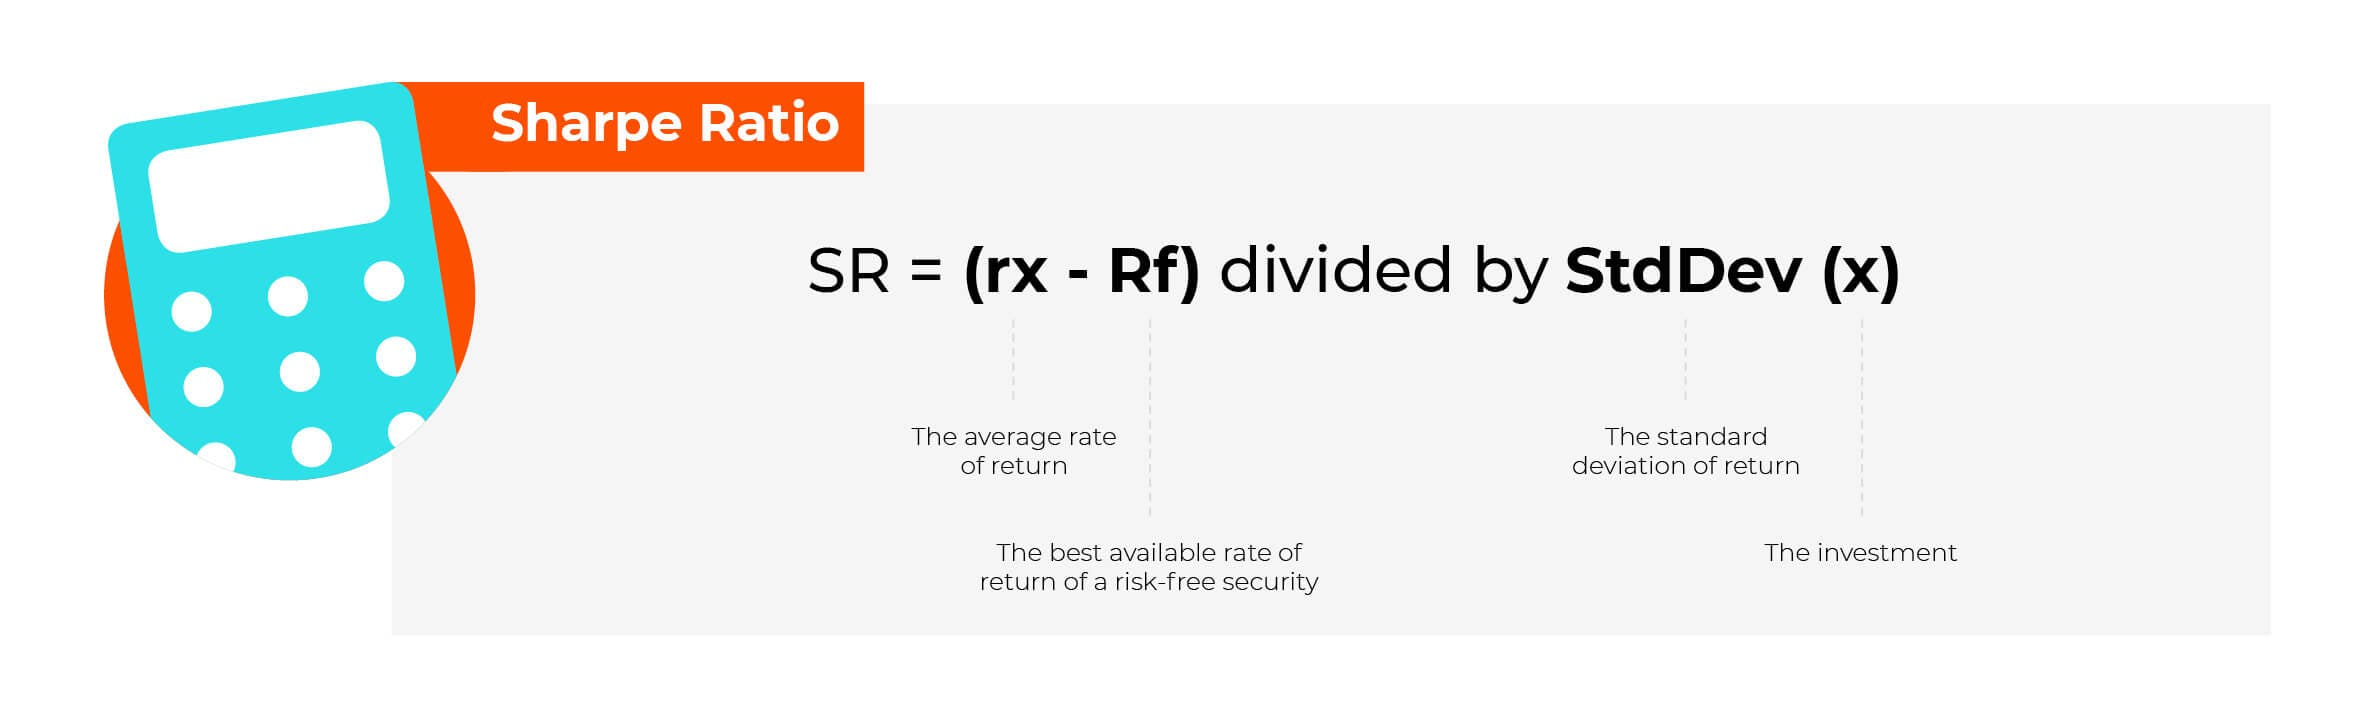 Sharpe Ratio